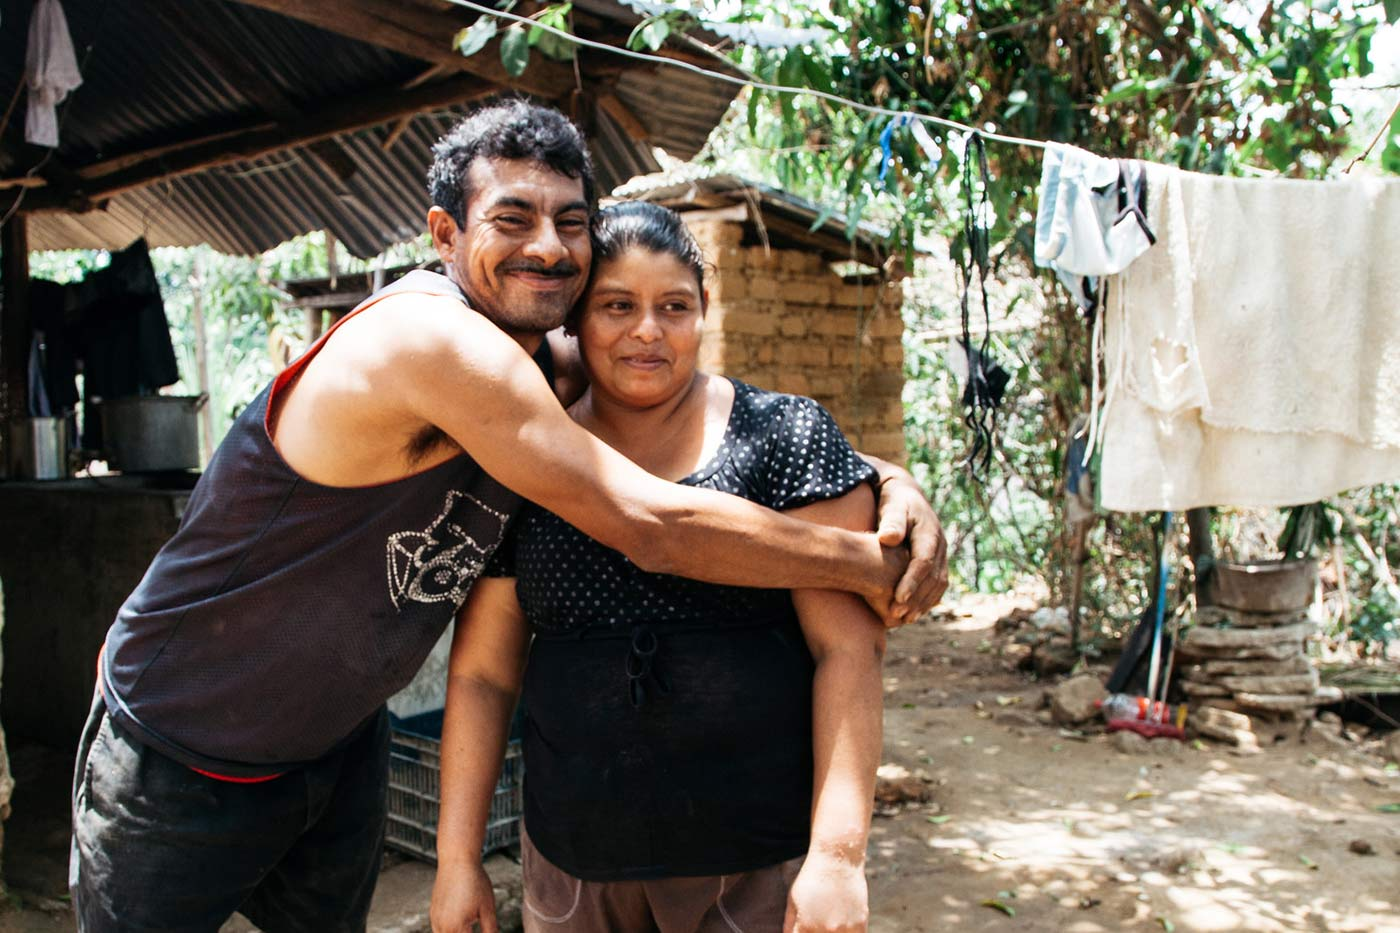 José León Torres and María Magdalena Castillo, husband and wife project participants, at their home in the community of Las Haciendas